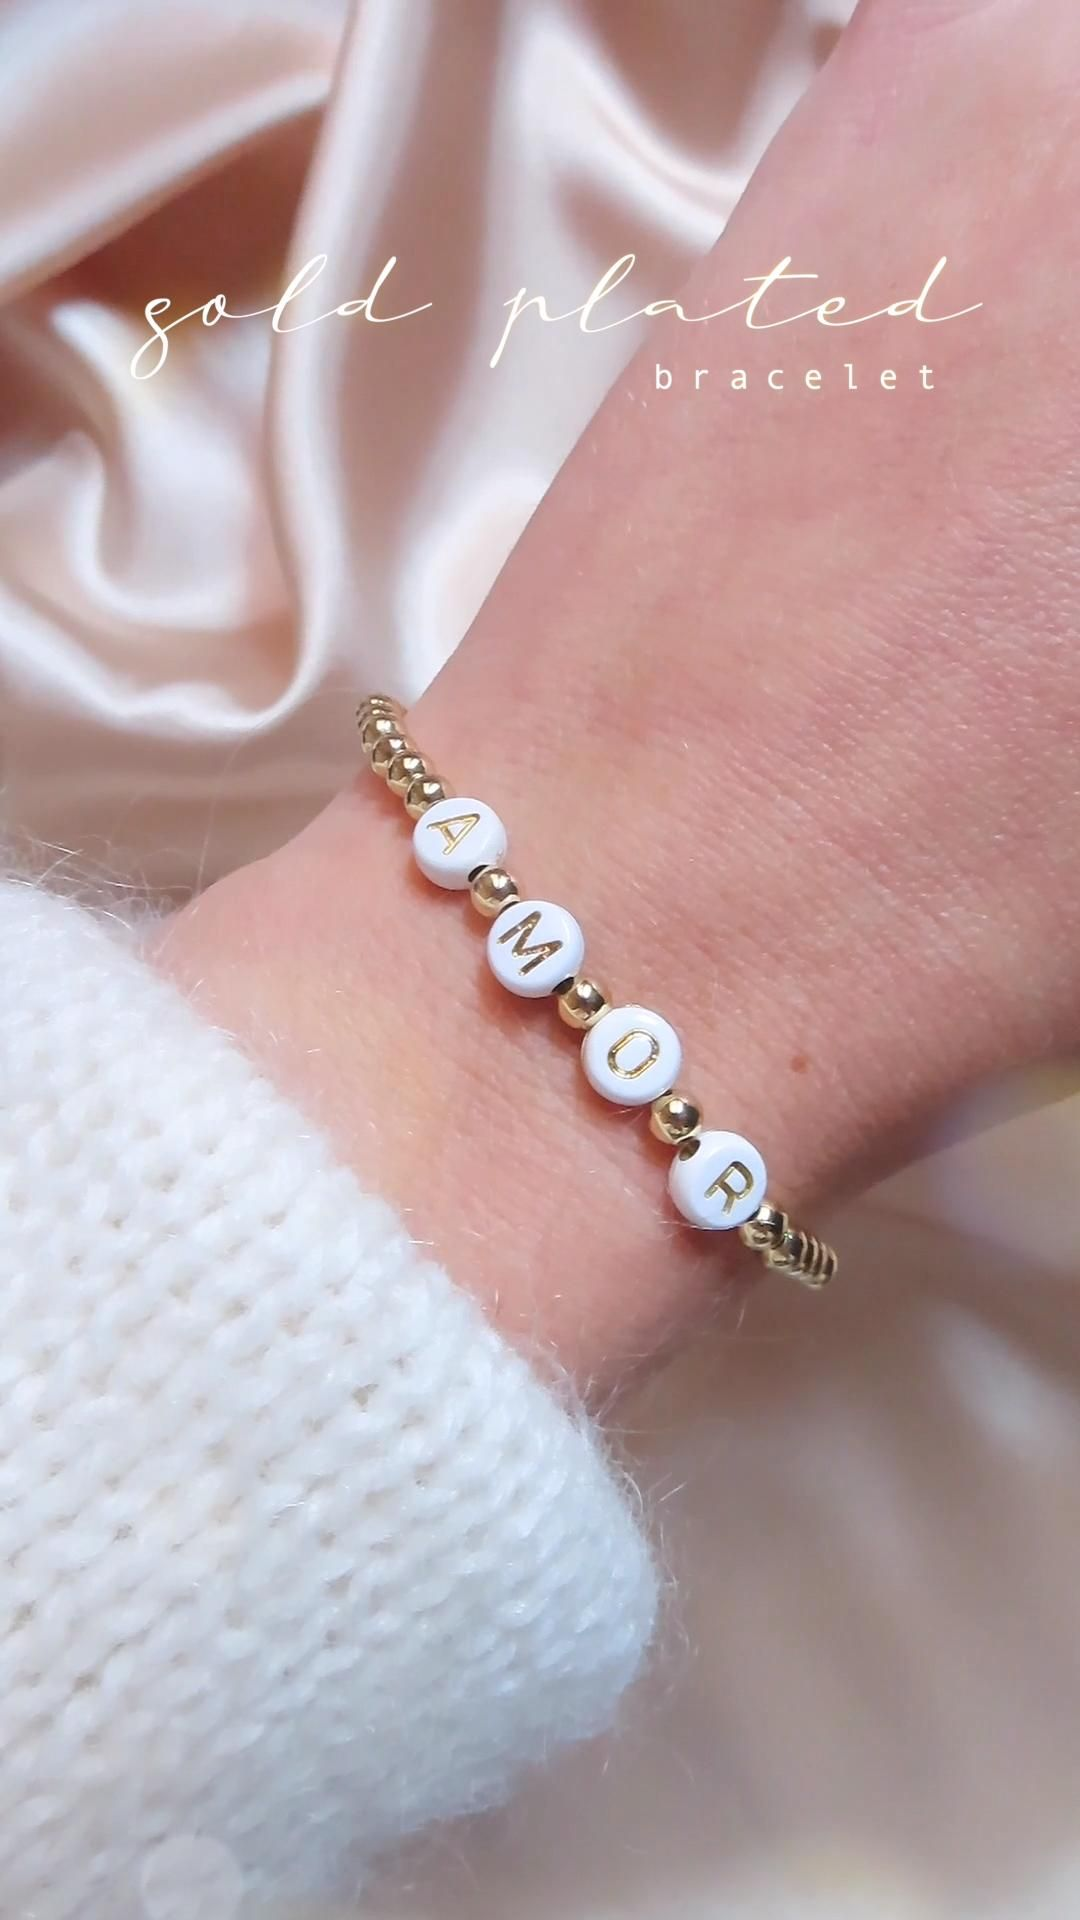 Gold plated jewelry, Name bracelet gold, Personalized gifts, Pulsera con nombre,Joyas bañadas en oro